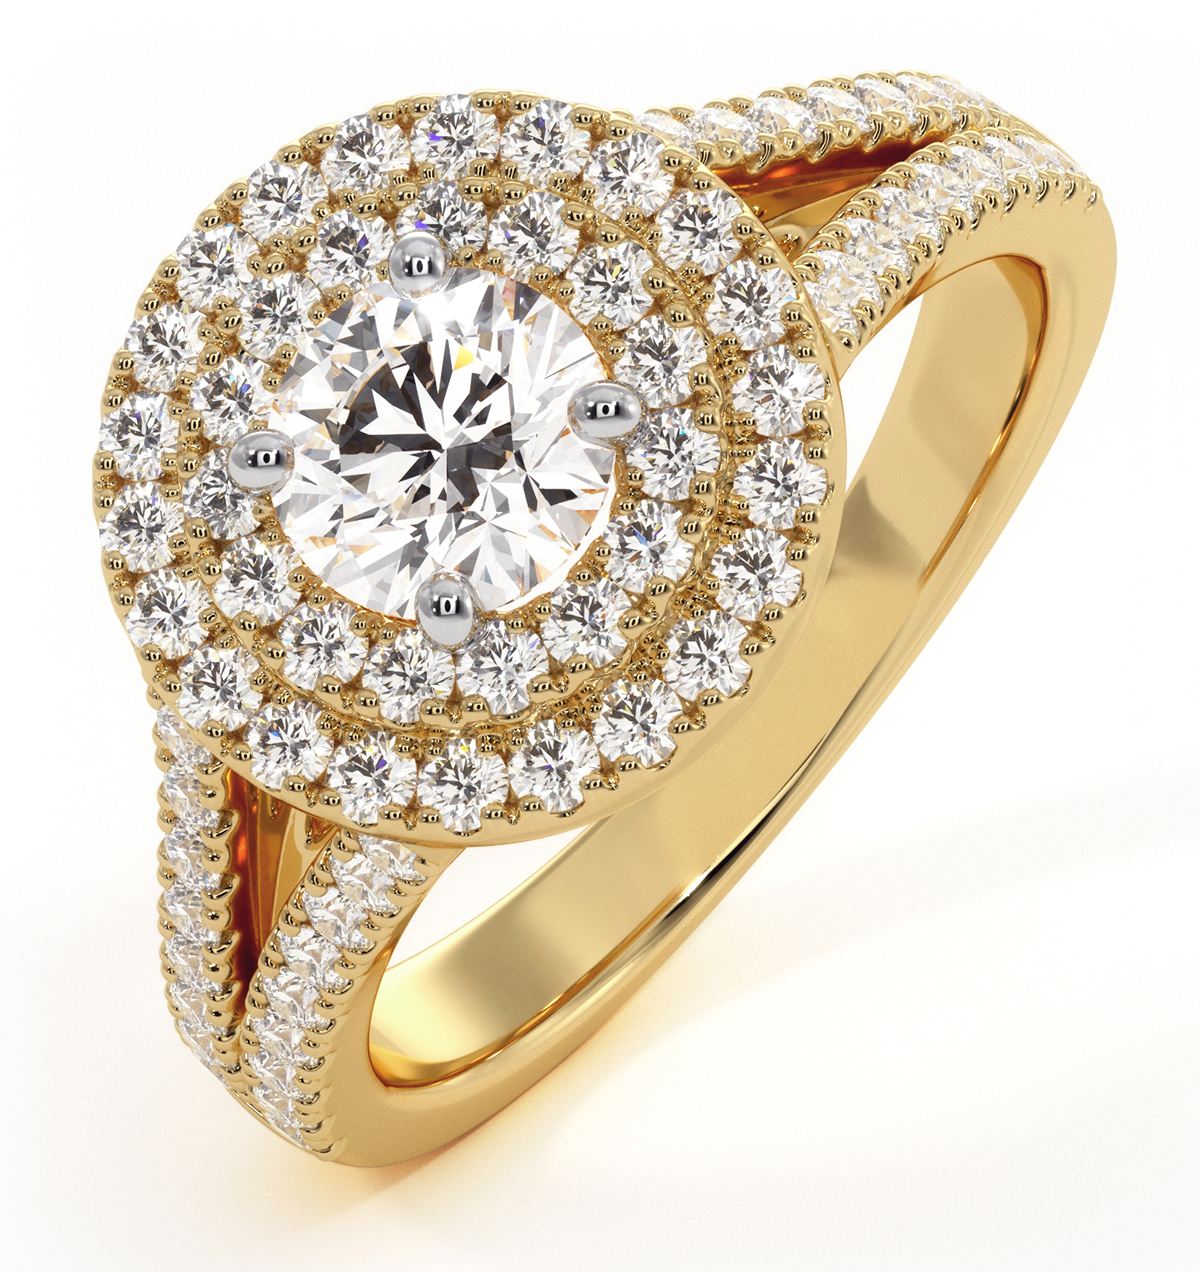 Camilla GIA Diamond Halo Engagement Ring in 18K Gold 1.15ct G/VS2 - image 1